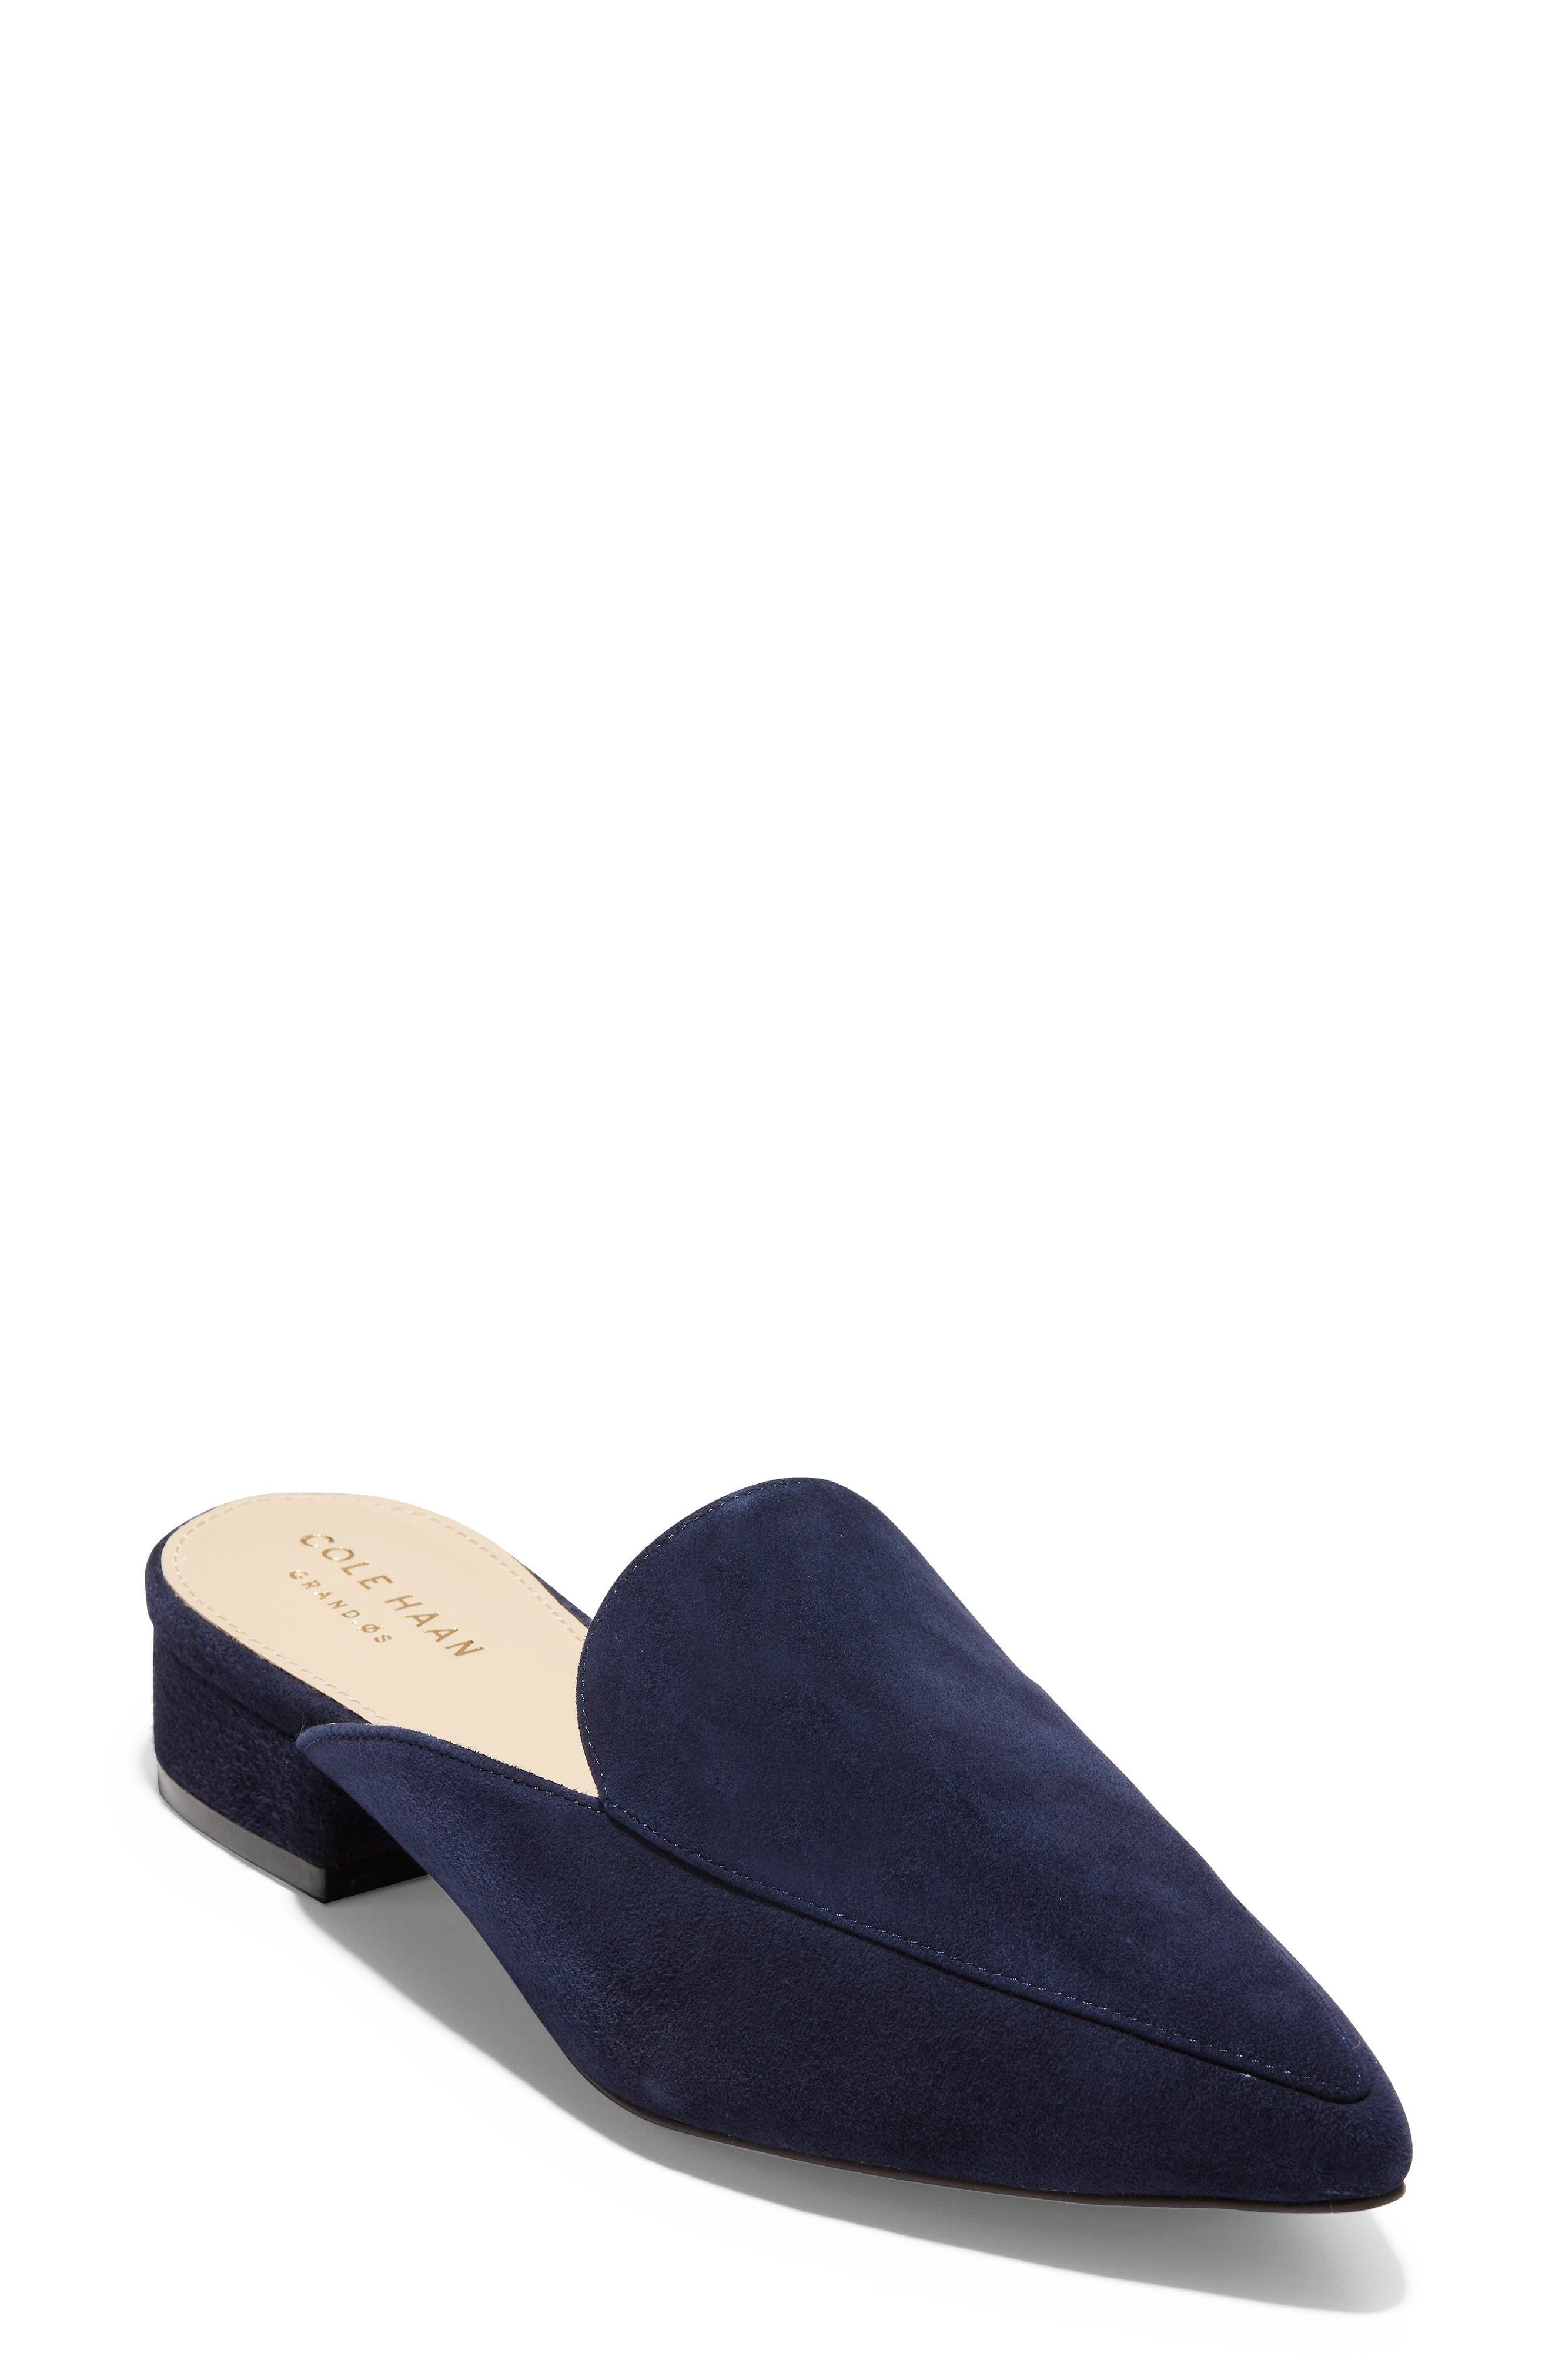 Piper Loafer Mule,                         Main,                         color, Marine Blue Suede